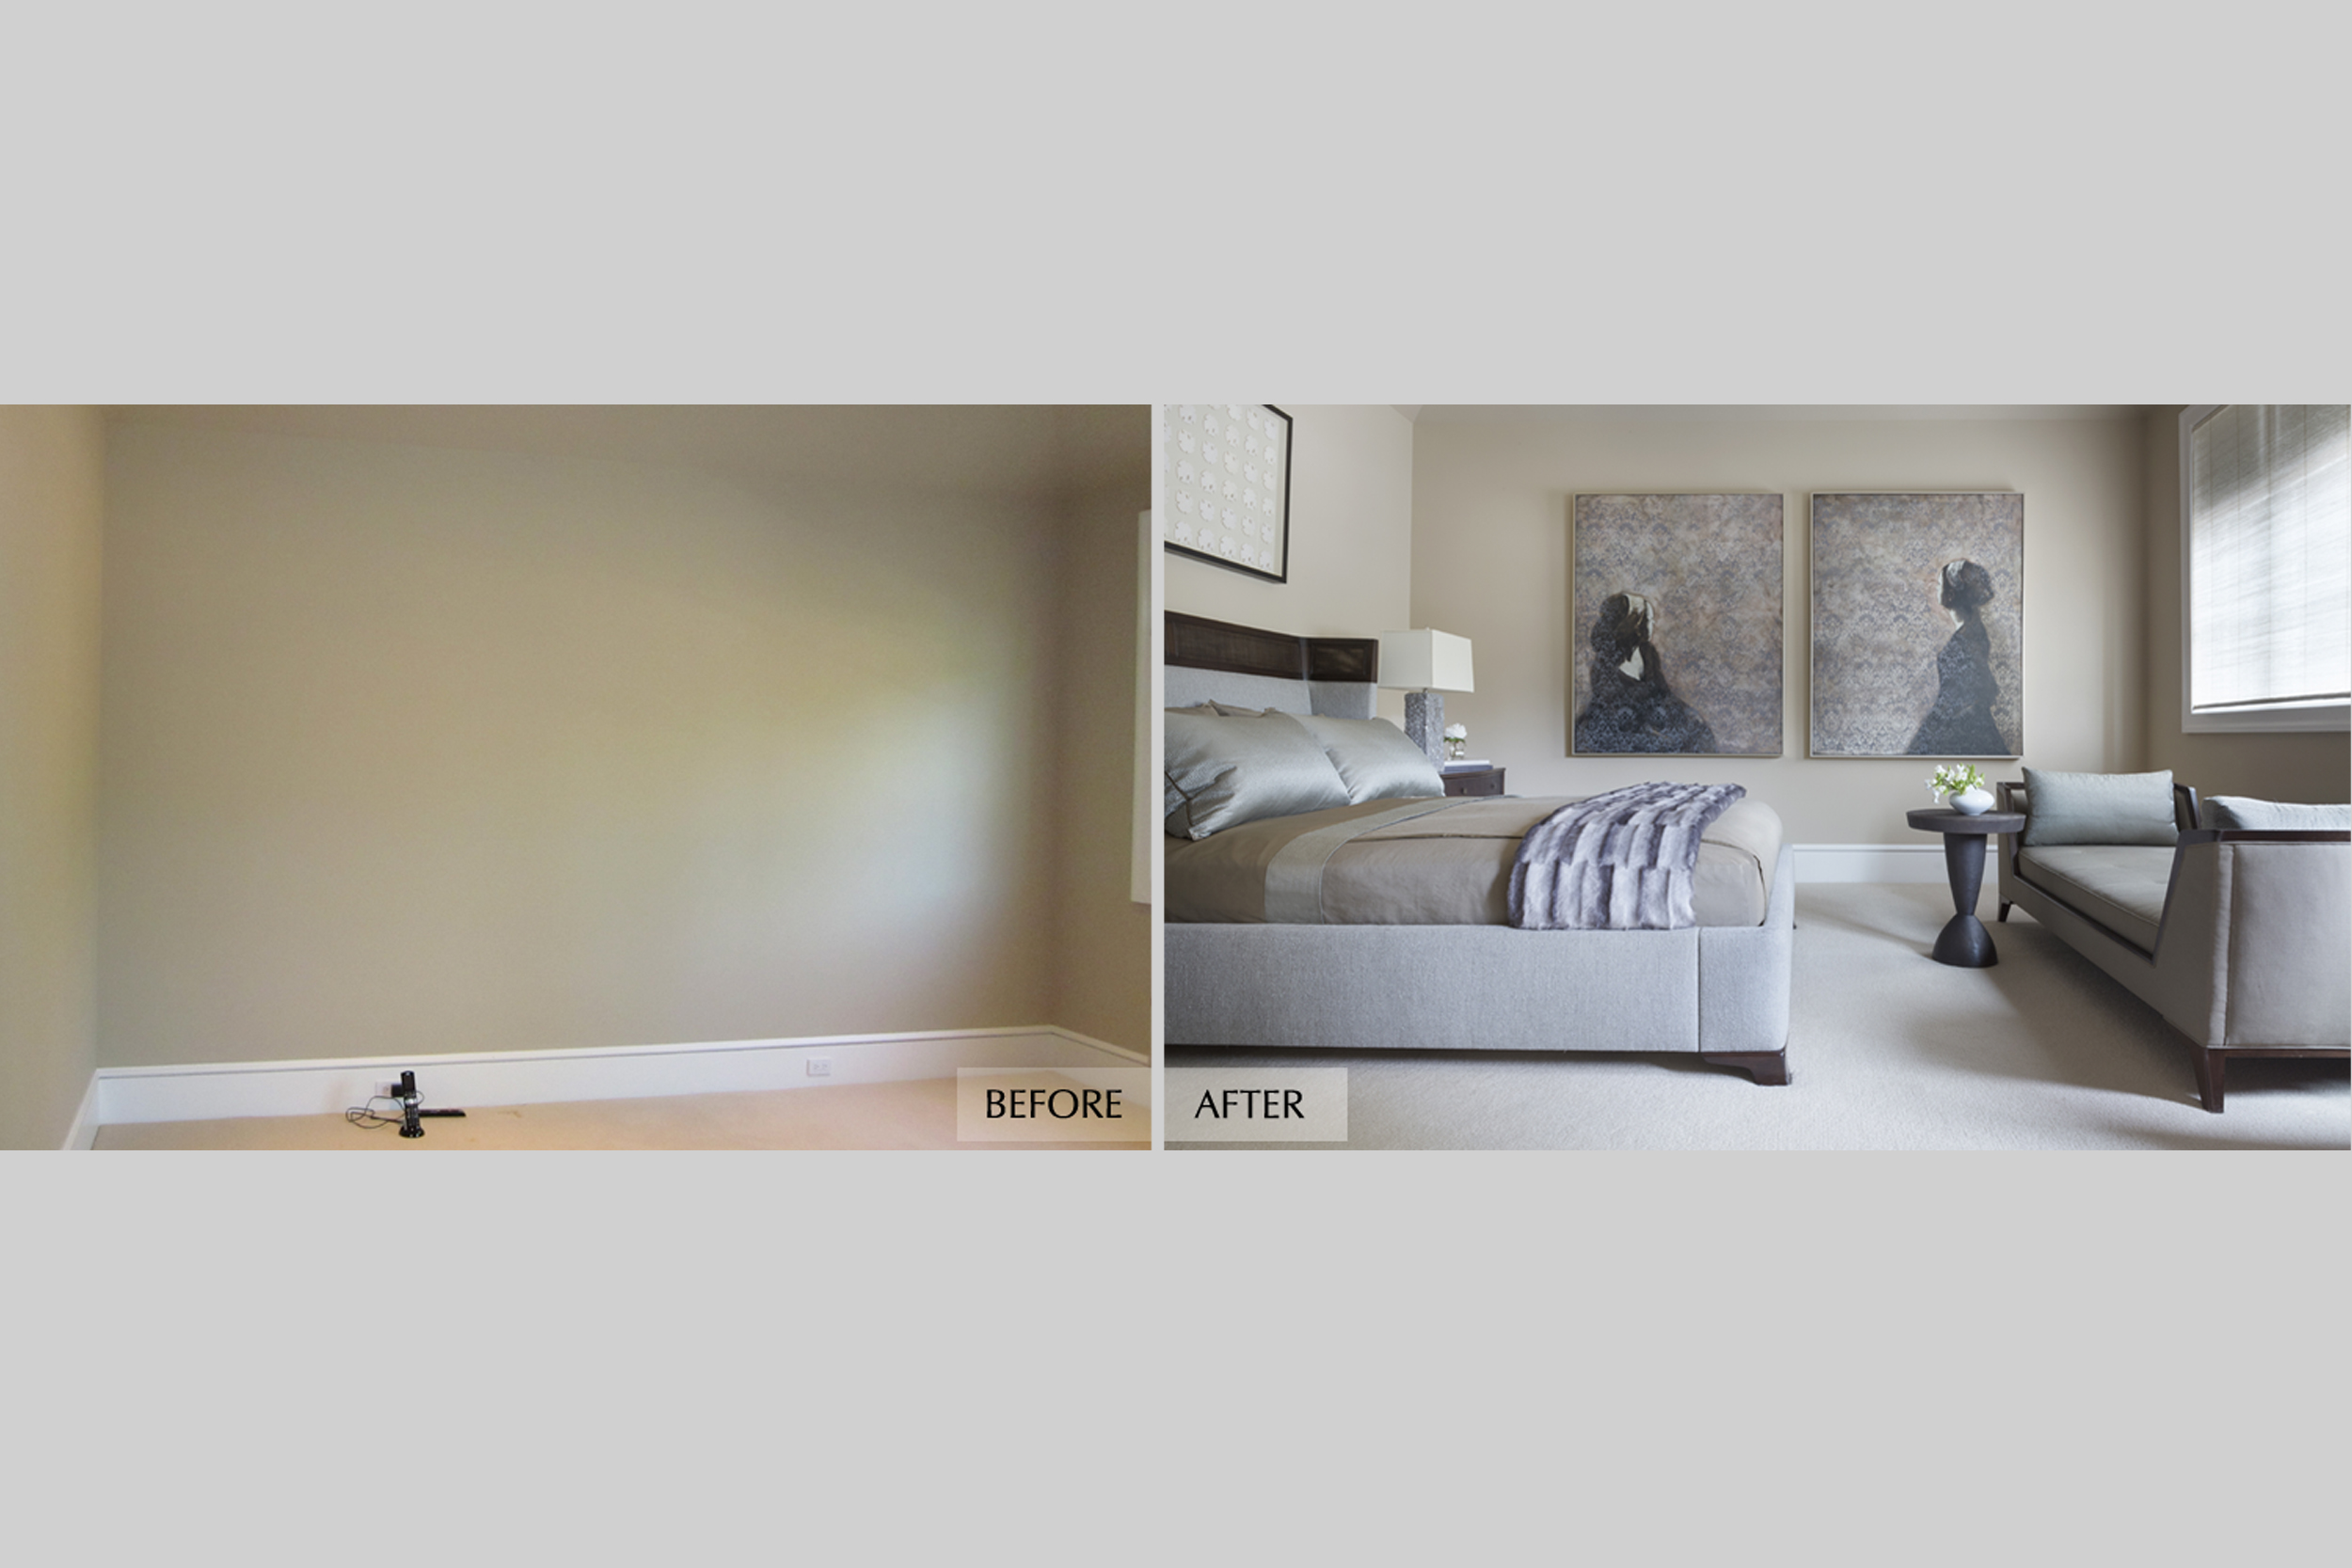 DESIGN415 | Atherton Guest Room Before and After Interior Design